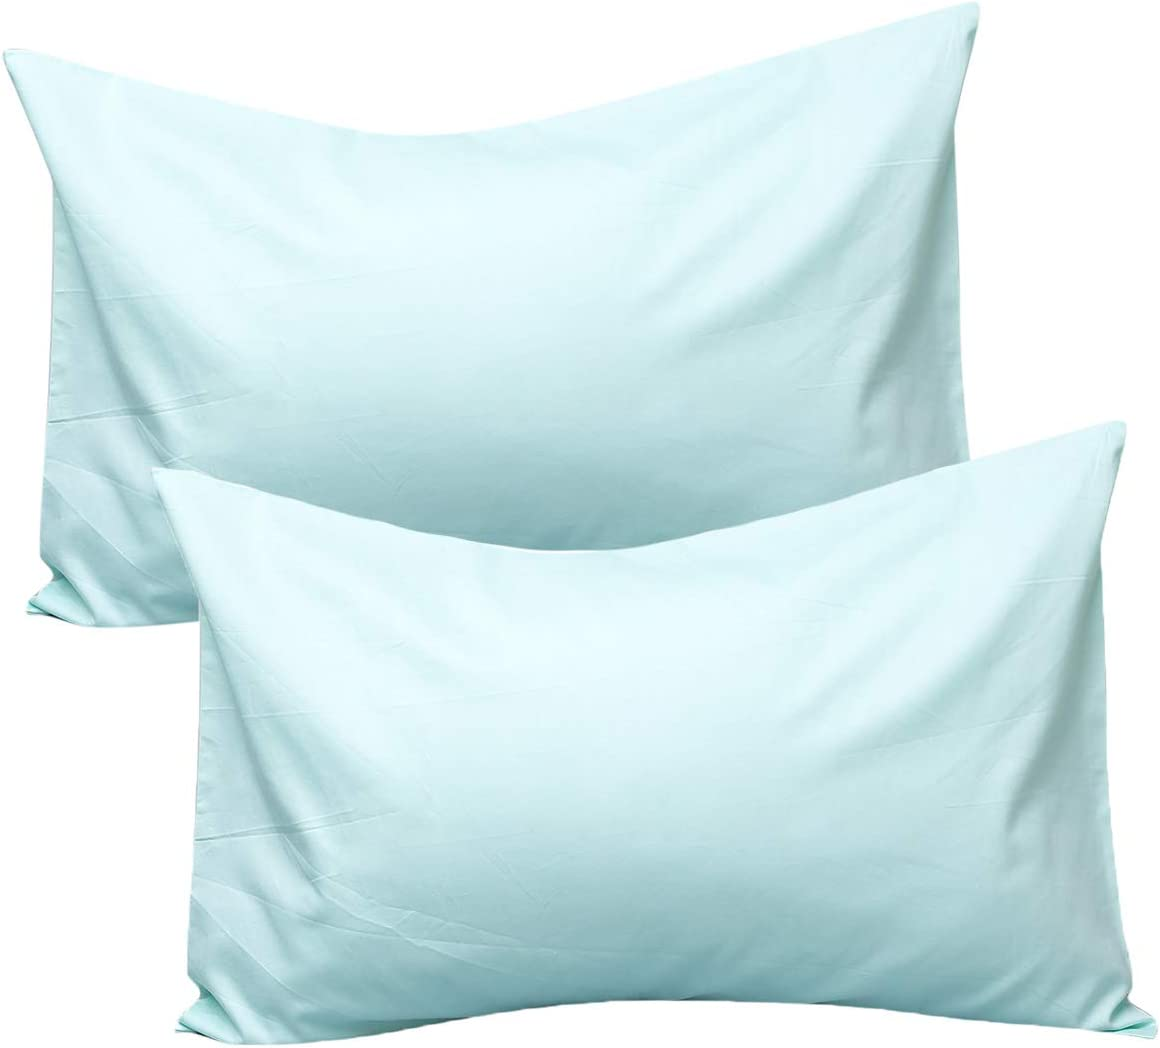 UOMNY Kids Toddler Pillowcases,100/% Cotton Travel Pillow Covers Set of 2 Pack,Pillowslip Case Fits Pillows sizesd 14x 20 for Kids Bedding Pillow Cover Baby Pillow Cases Green